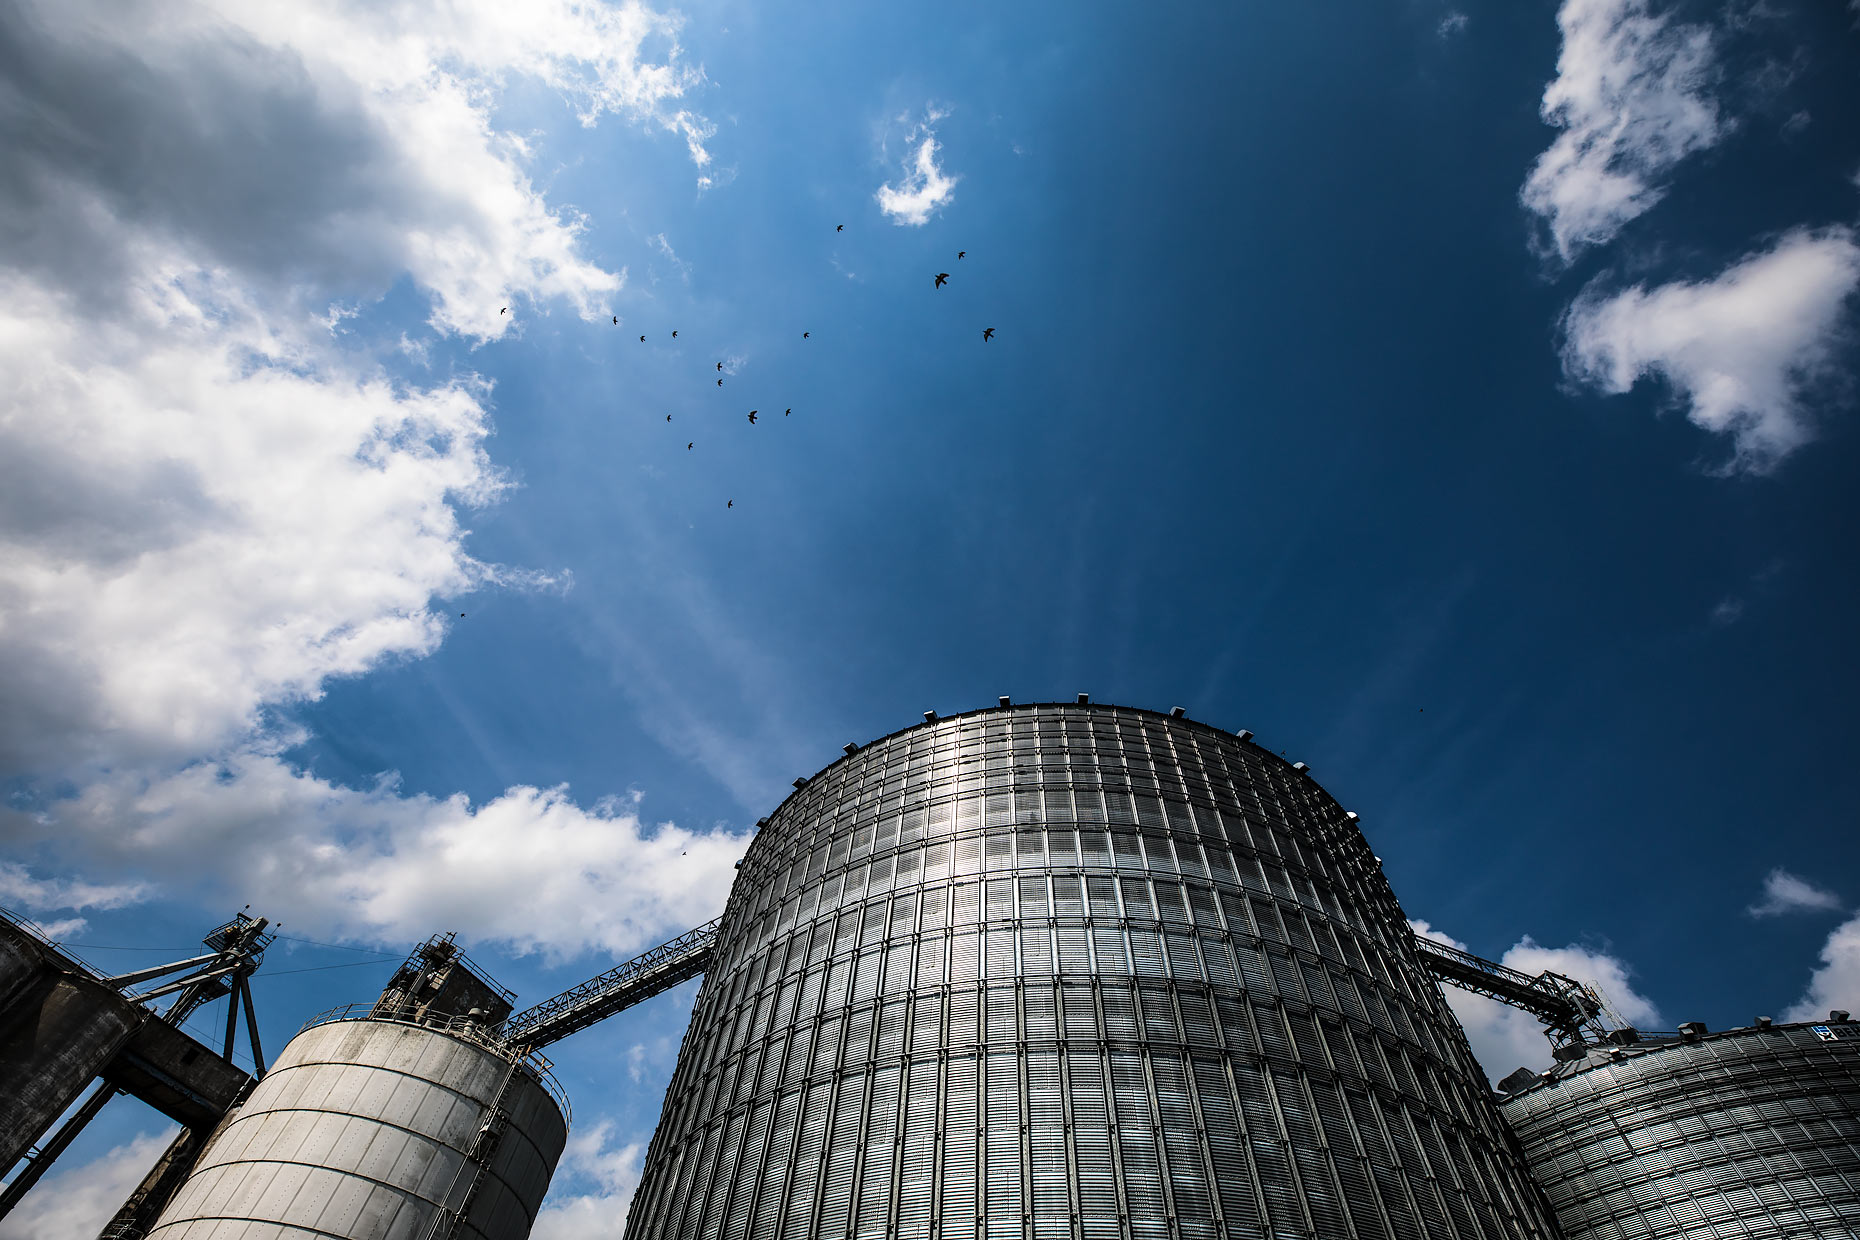 Looking up at a grain silo with blue sky and birds overhead |  Scott Gable industrial photographer